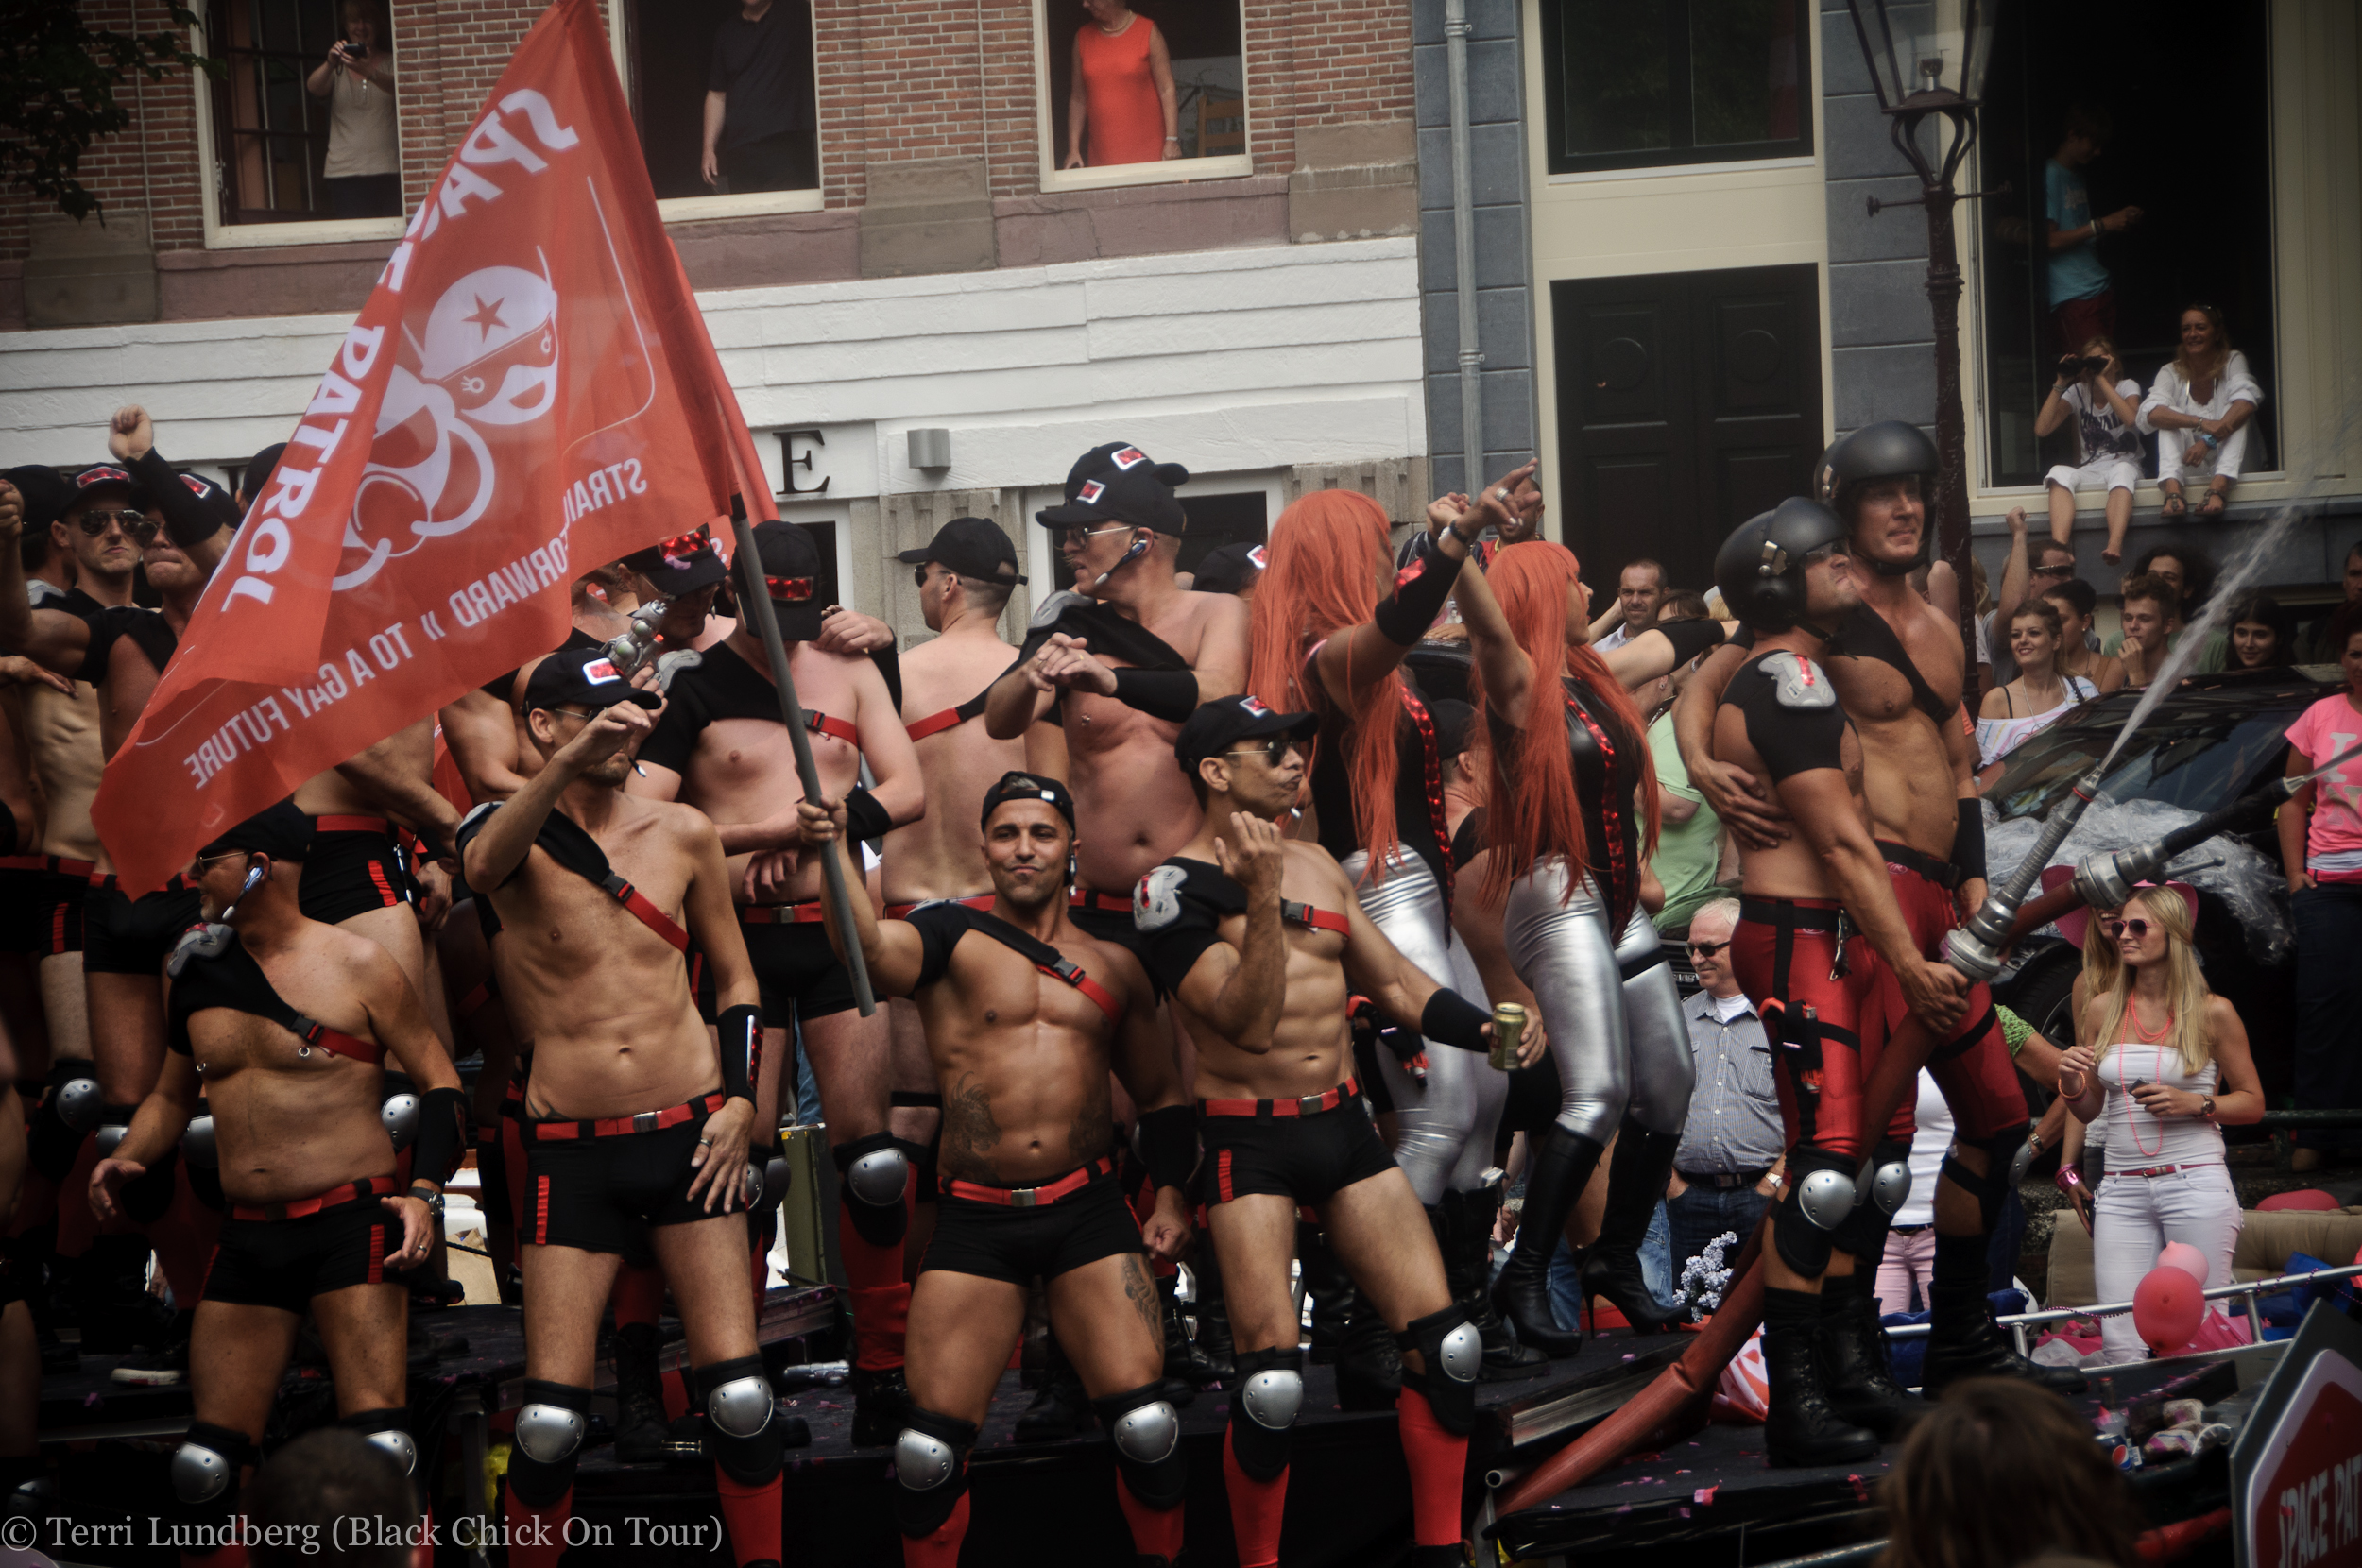 [VIDEO] Amsterdam Gay Pride Parade 2012